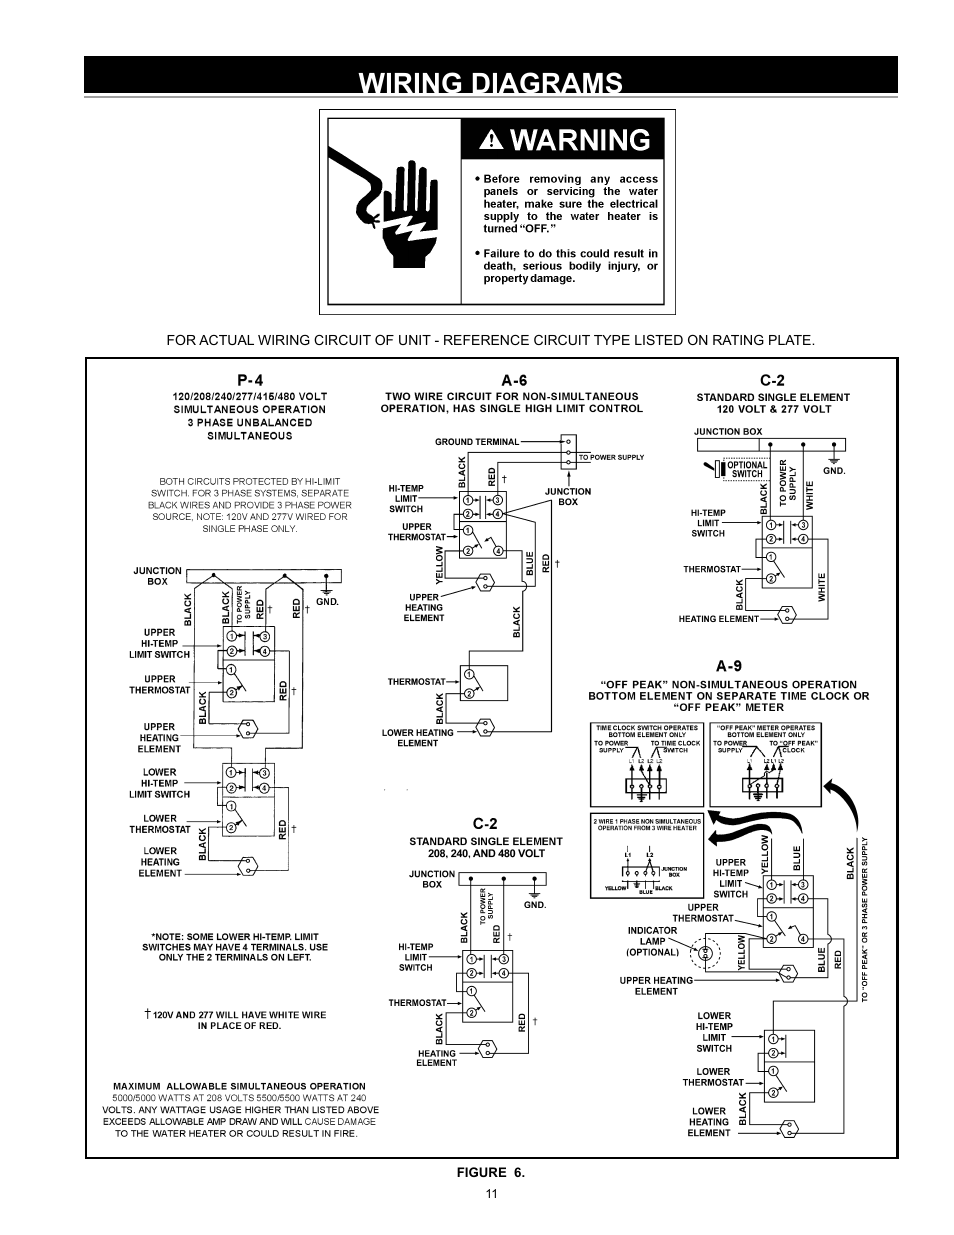 medium resolution of wiring diagrams john wood electric water heaters new user manual page 11 28